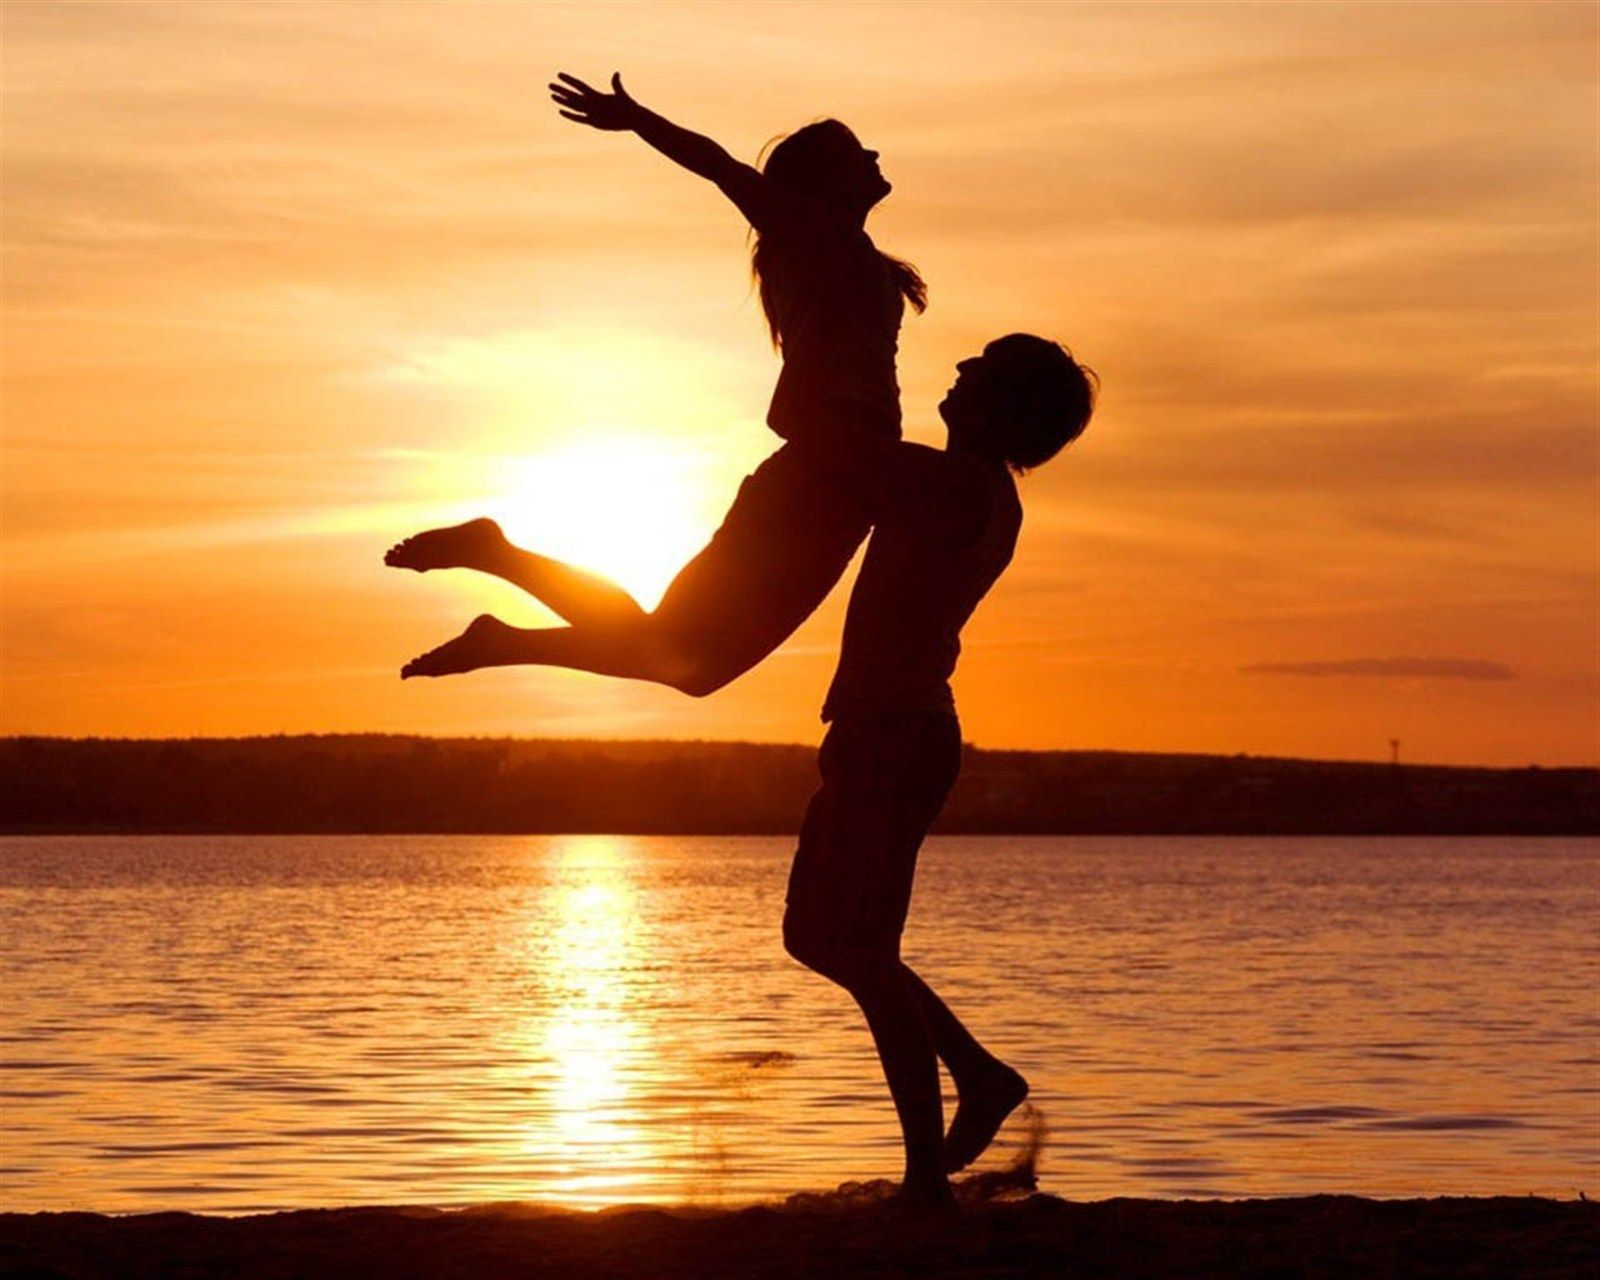 Wallpaper download couple love - Download Free Love Wallpapers Pictures And Desktop Backgrounds Amazing Collection Of Widescreen